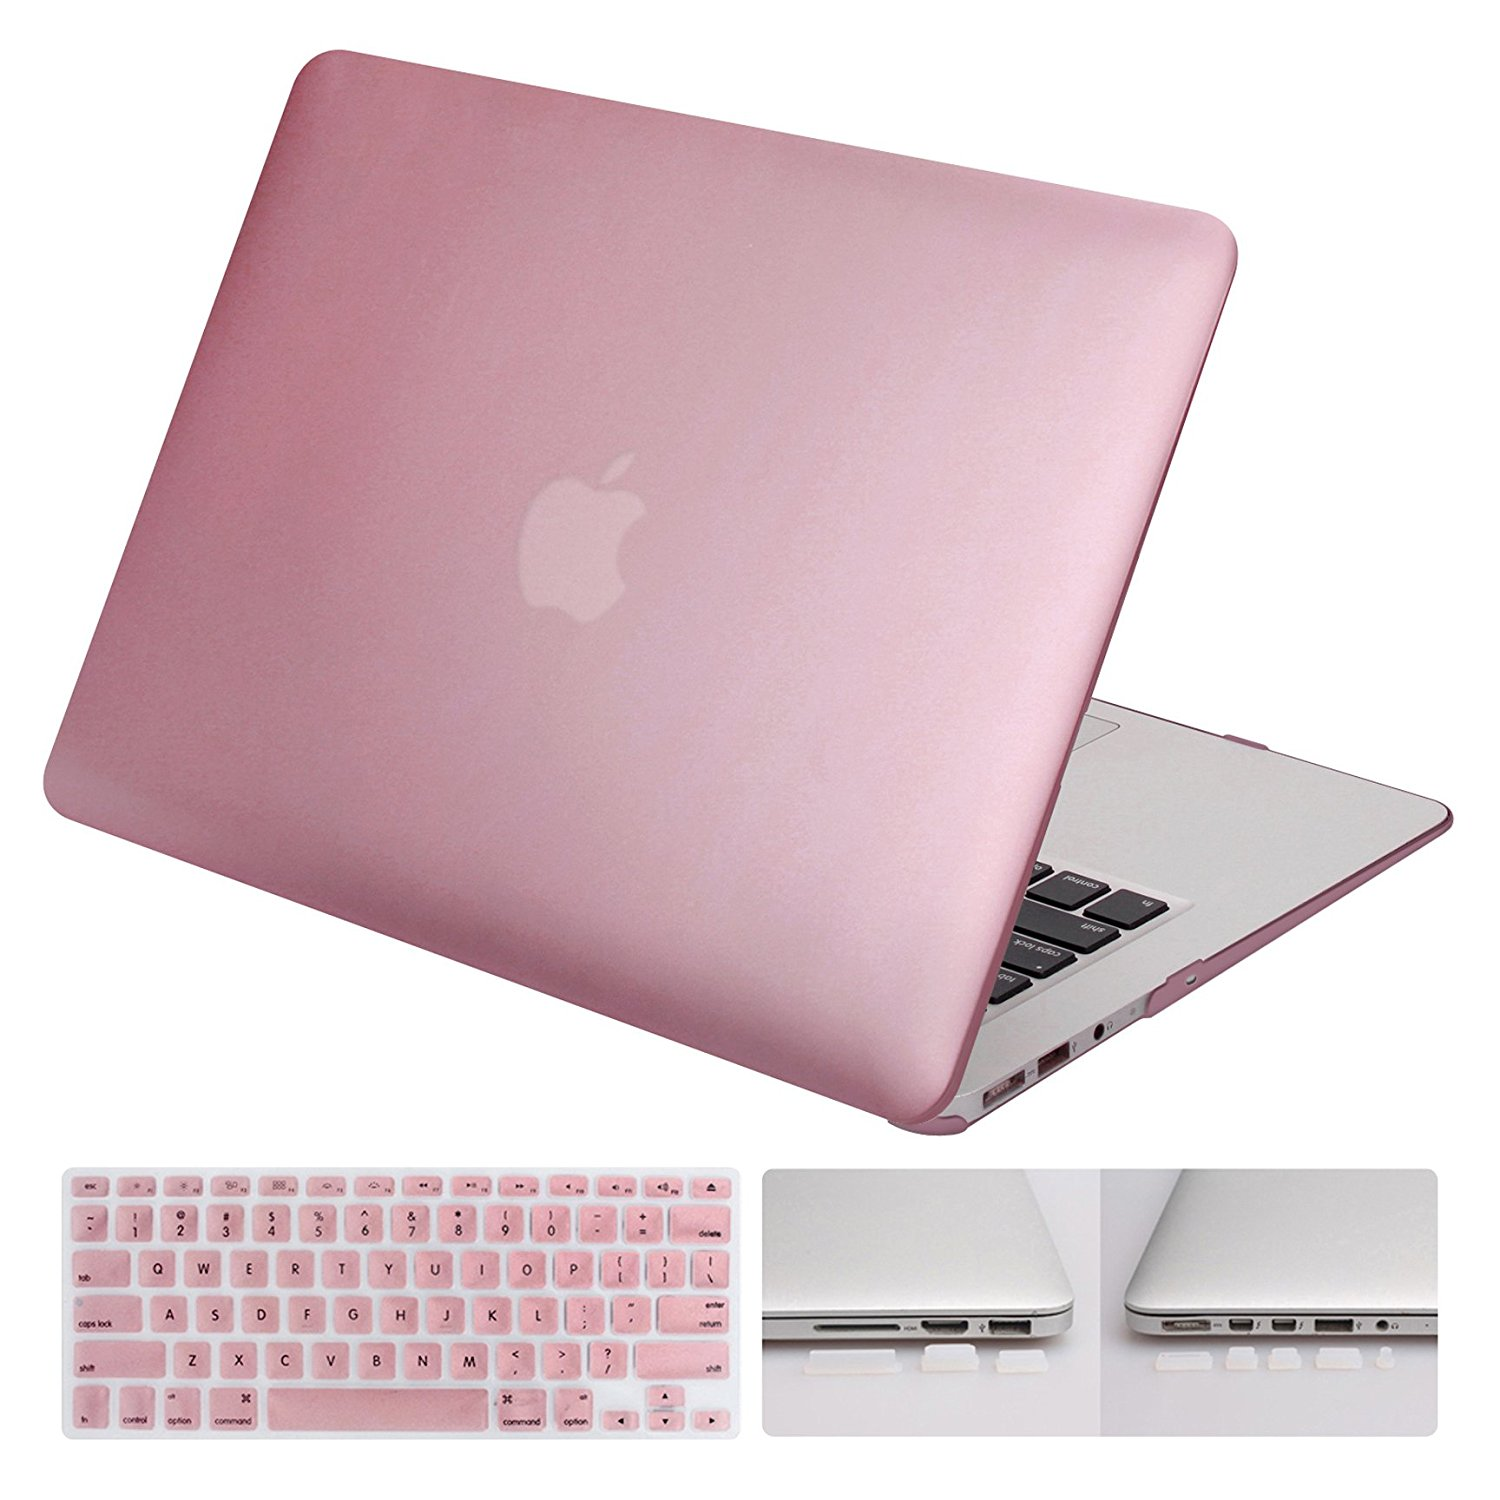 MacBook Air 13 Inch Case with Keyboard Cover and Dust Plug for Apple Macbook Air 13 Inch Sleeve Model A1369 and A1466 - Rose Gold